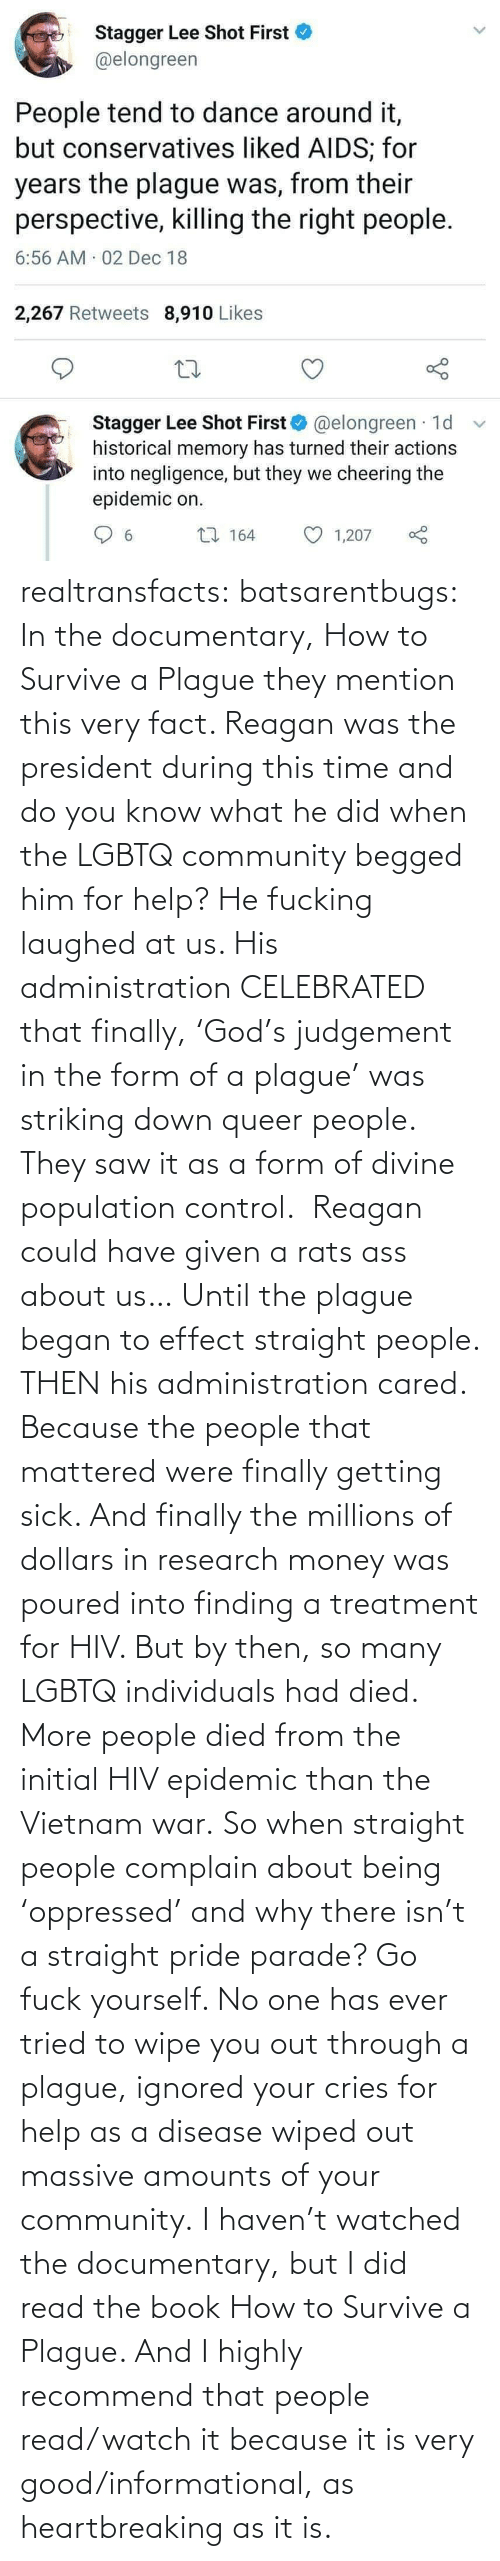 haven: Stagger Lee Shot First  @elongreen  People tend to dance around it,  but conservatives liked AIDS; for  years the plague was, from their  perspective, killing the right people.  6:56 AM 02 Dec 18  2,267 Retweets 8,910 Likes  Stagger Lee Shot First O @elongreen · 1d  historical memory has turned their actions  into negligence, but they we cheering the  epidemic on.  27 164  1,207  6. realtransfacts:  batsarentbugs:  In the documentary, How to Survive a Plague they mention this very fact. Reagan was the president during this time and do you know what he did when the LGBTQ community begged him for help? He fucking laughed at us. His administration CELEBRATED that finally, 'God's judgement in the form of a plague' was striking down queer people.  They saw it as a form of divine population control.  Reagan could have given a rats ass about us… Until the plague began to effect straight people. THEN his administration cared. Because the people that mattered were finally getting sick. And finally the millions of dollars in research money was poured into finding a treatment for HIV. But by then, so many LGBTQ individuals had died.  More people died from the initial HIV epidemic than the Vietnam war. So when straight people complain about being 'oppressed' and why there isn't a straight pride parade? Go fuck yourself. No one has ever tried to wipe you out through a plague, ignored your cries for help as a disease wiped out massive amounts of your community.  I haven't watched the documentary, but I did read the book  How to Survive a Plague. And I highly recommend that people read/watch it because it is very good/informational, as heartbreaking as it is.